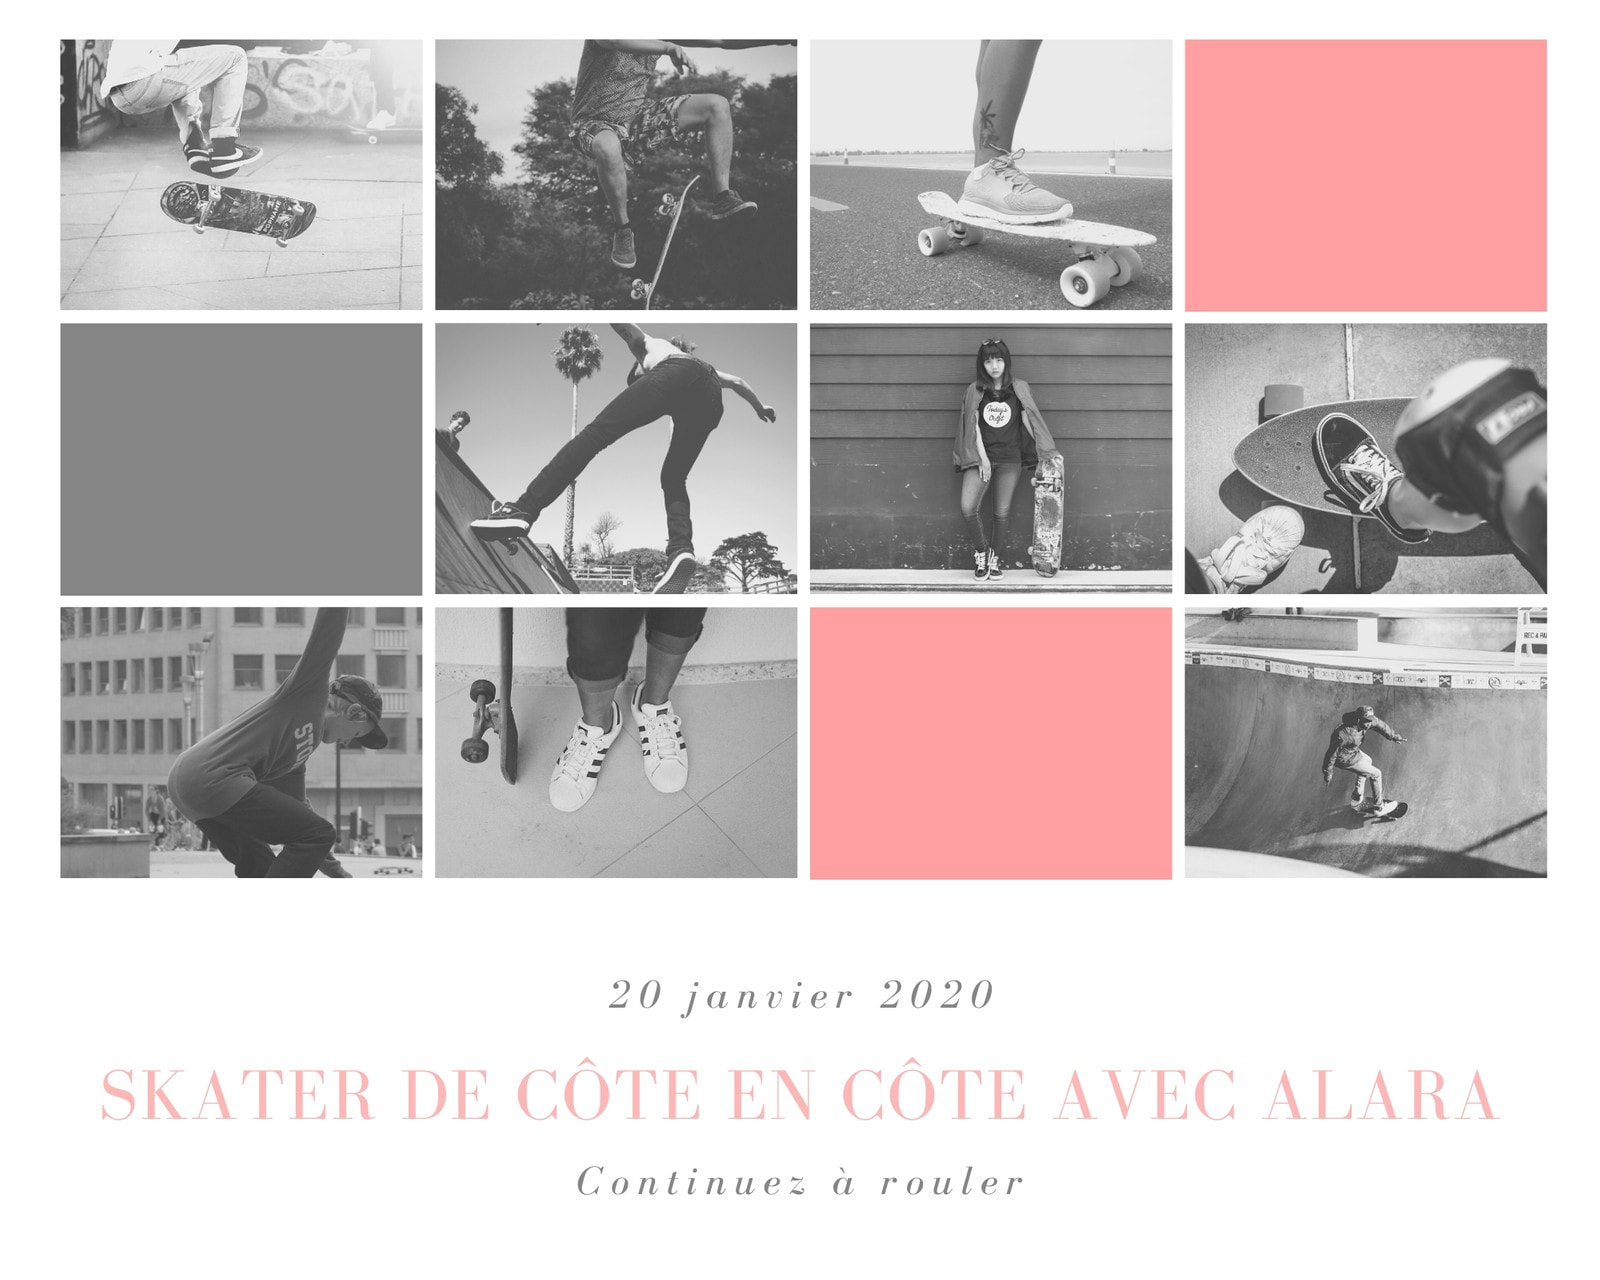 Montage photo de patineur monochrome